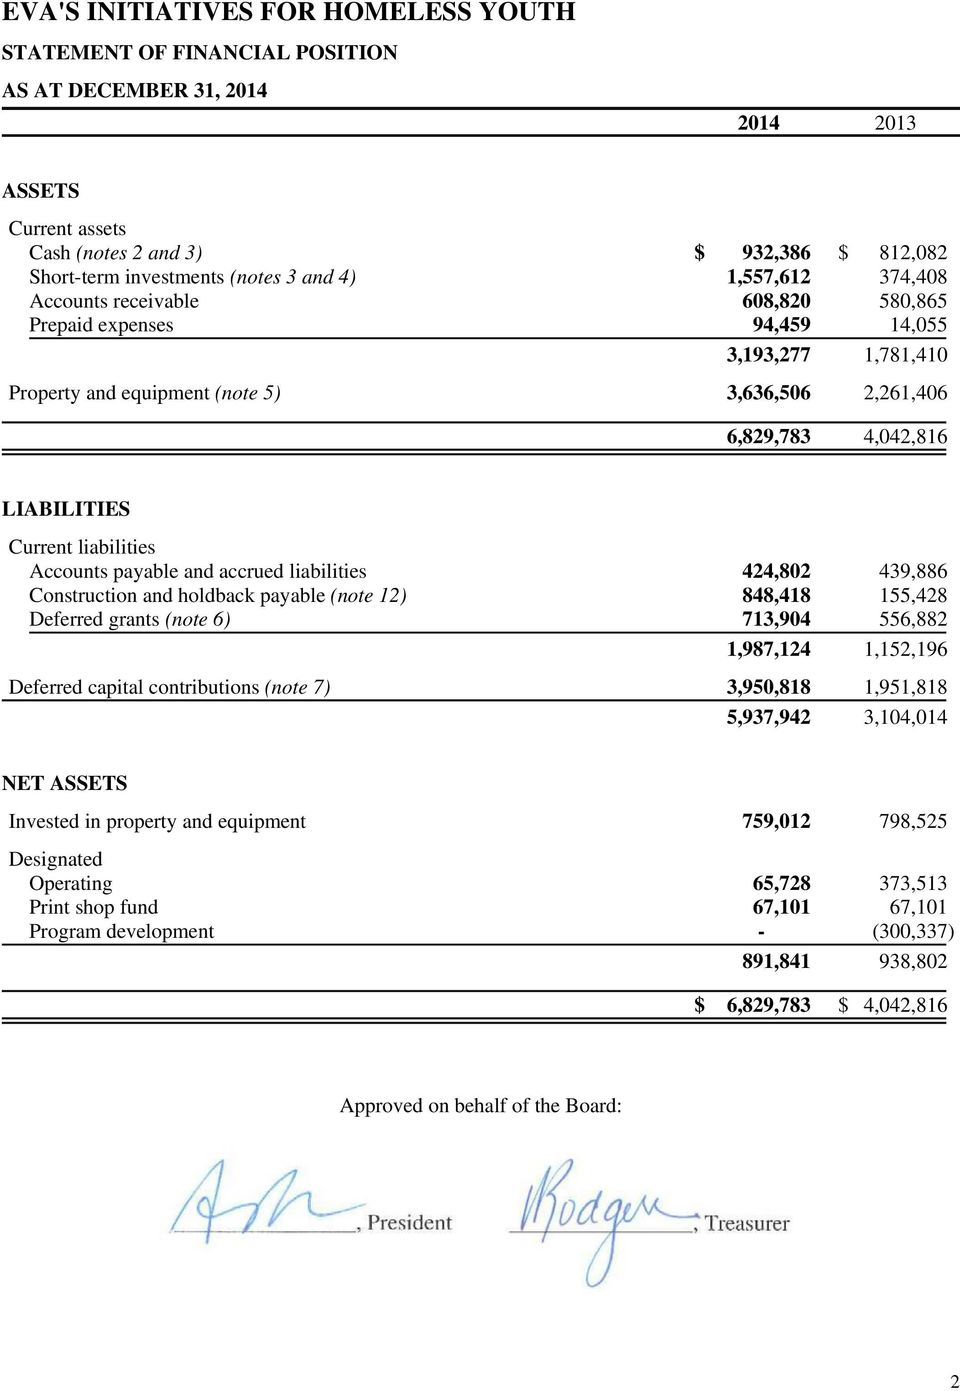 liabilities 424,802 439,886 Construction and holdback payable (note 12) 848,418 155,428 Deferred grants (note 6) 713,904 556,882 1,987,124 1,152,196 Deferred capital contributions (note 7) 3,950,818